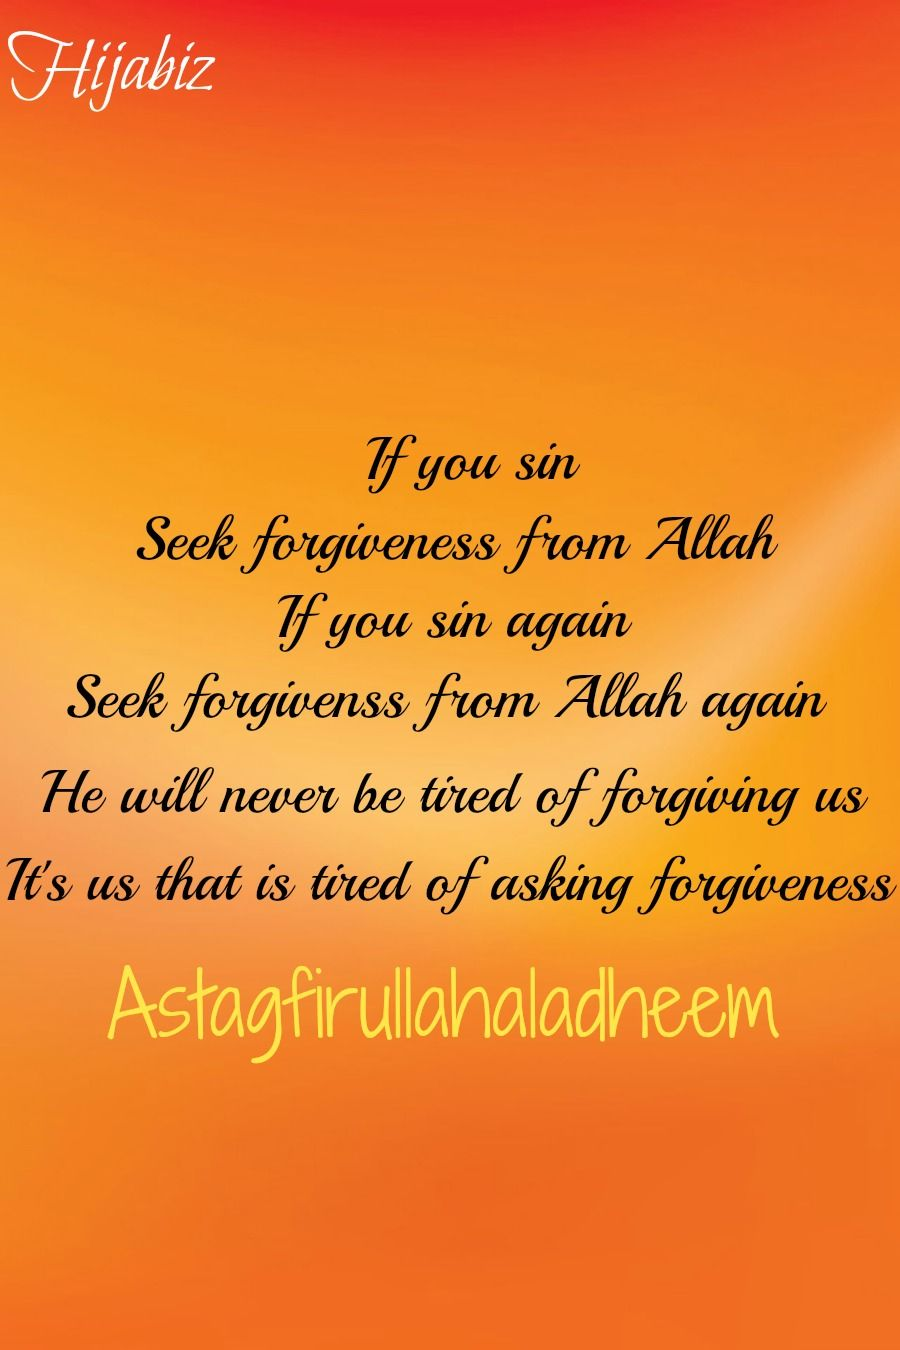 How to ask for forgiveness from a friend 3